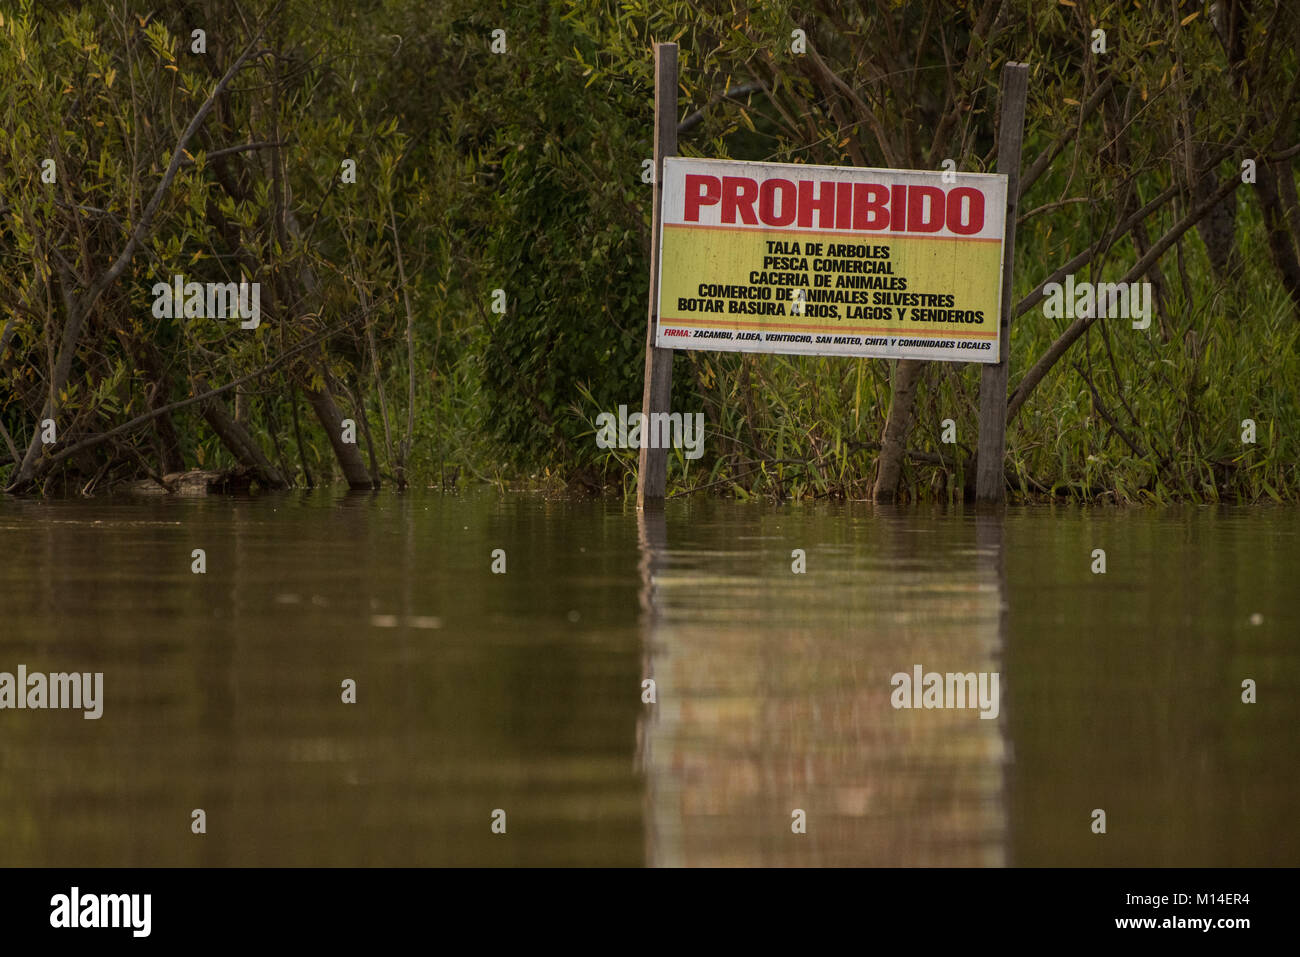 A sign by the Amazon river warning people that poaching, hunting,commercial fishing, and illegal activities will - Stock Image